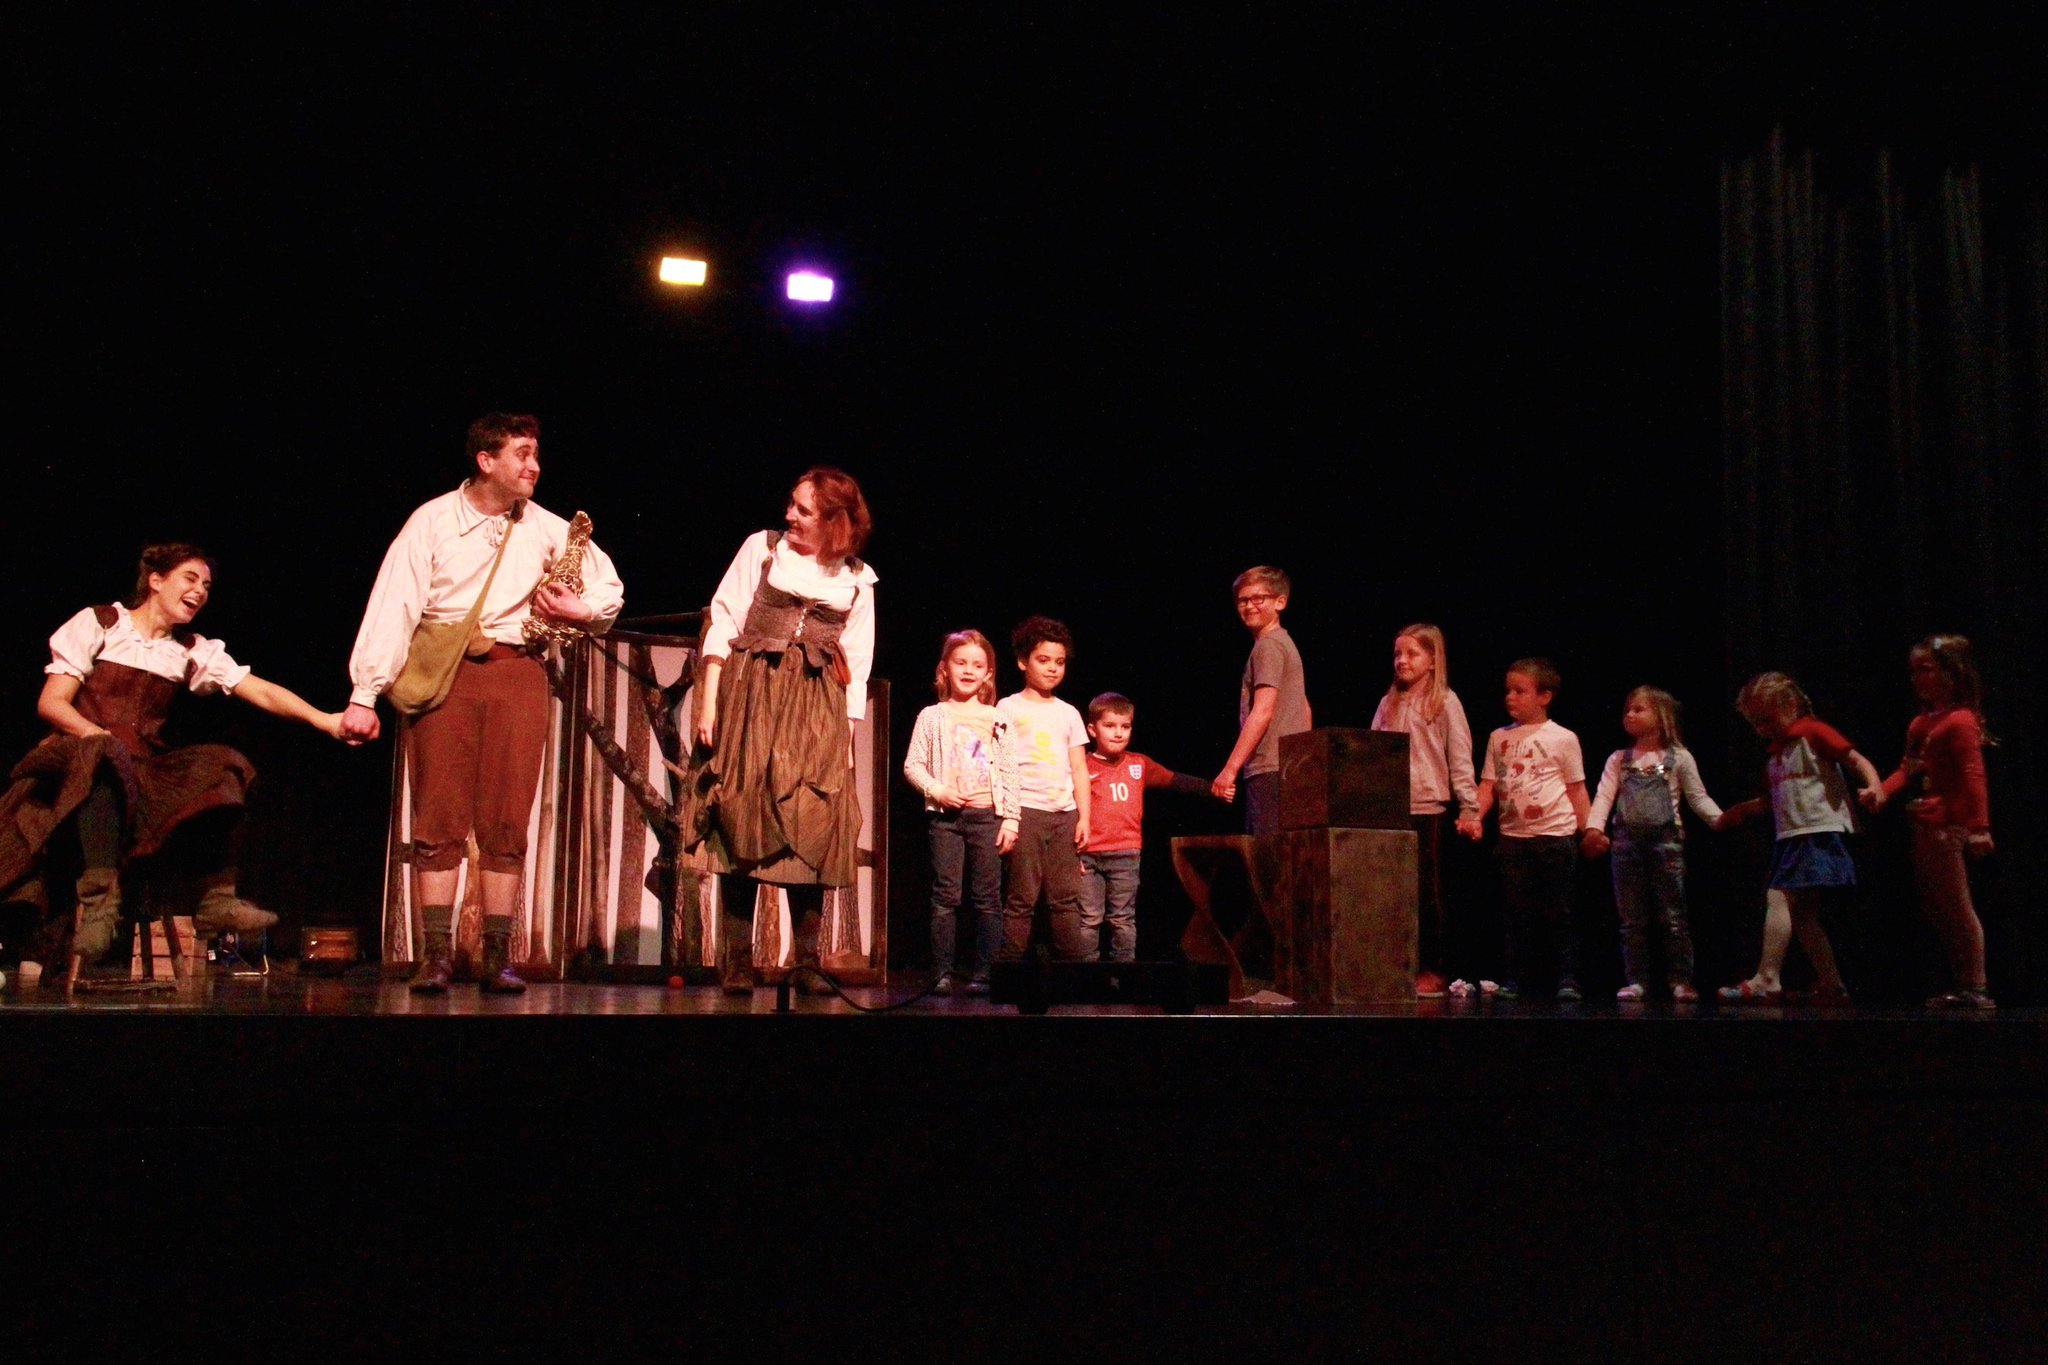 International School Of Zug And Luzern Iszl On Twitter Our Primary School Has Been Enjoying Live Theatre Drama Workshops With A Magical Visiting Production Based On The Grimm Fairy Tales Inspiring